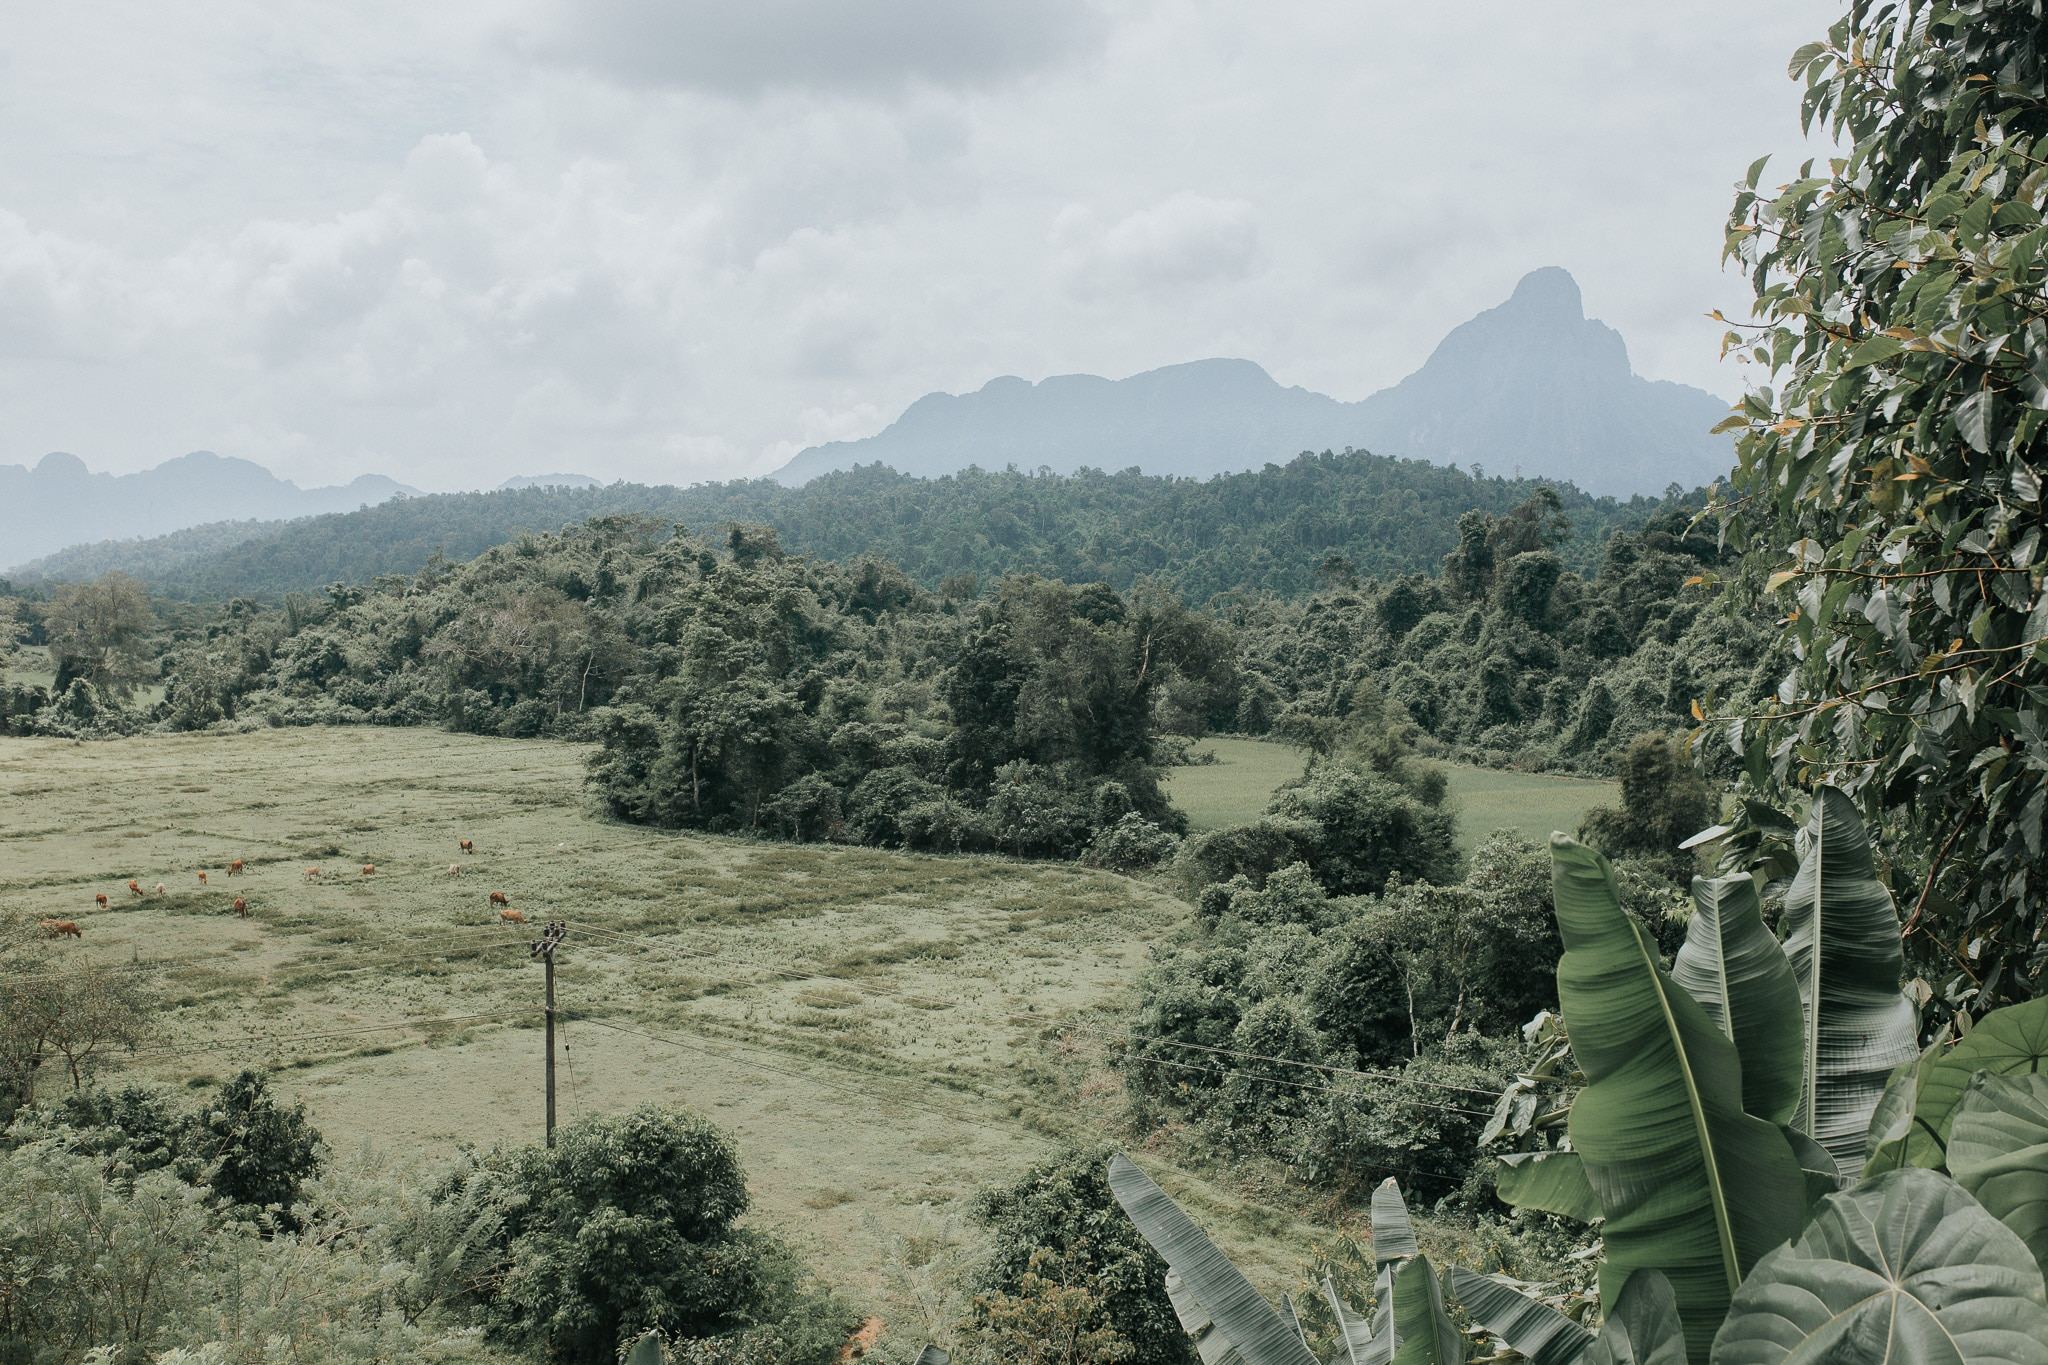 On week in Laos - Vang Vieng - Climbing Nam Xai viewpoint